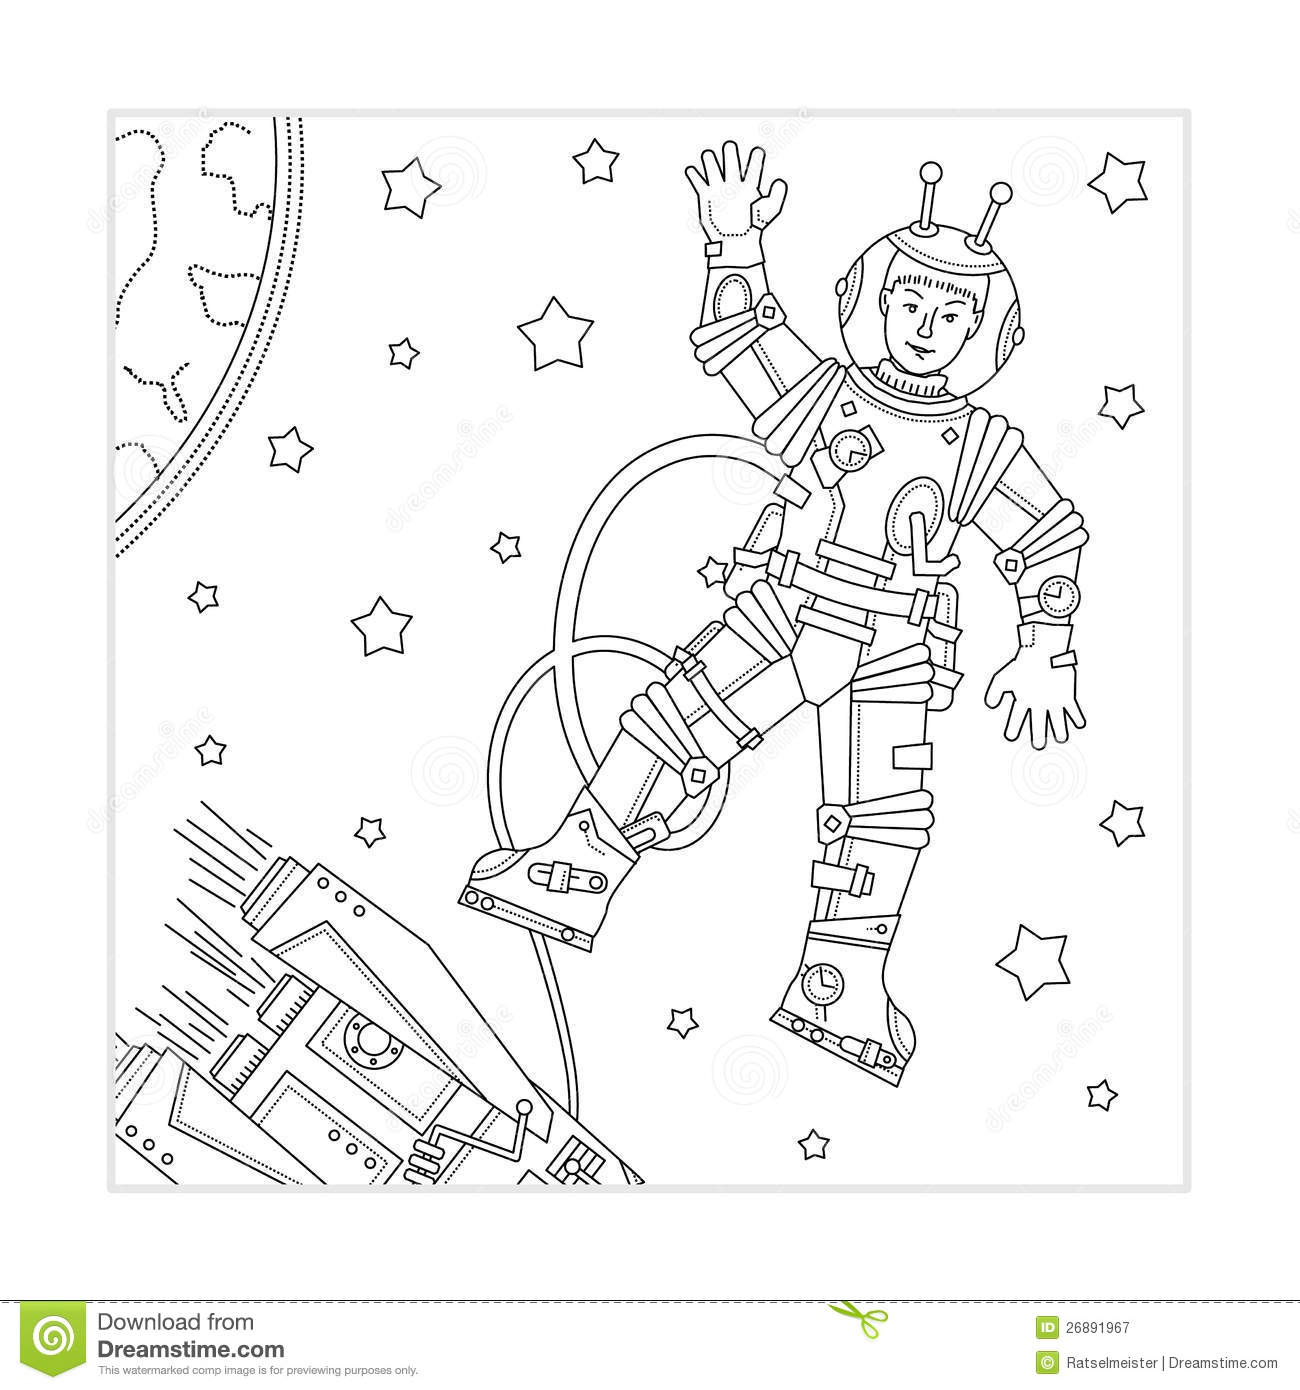 Coloring page for kids stock vector. Illustration of